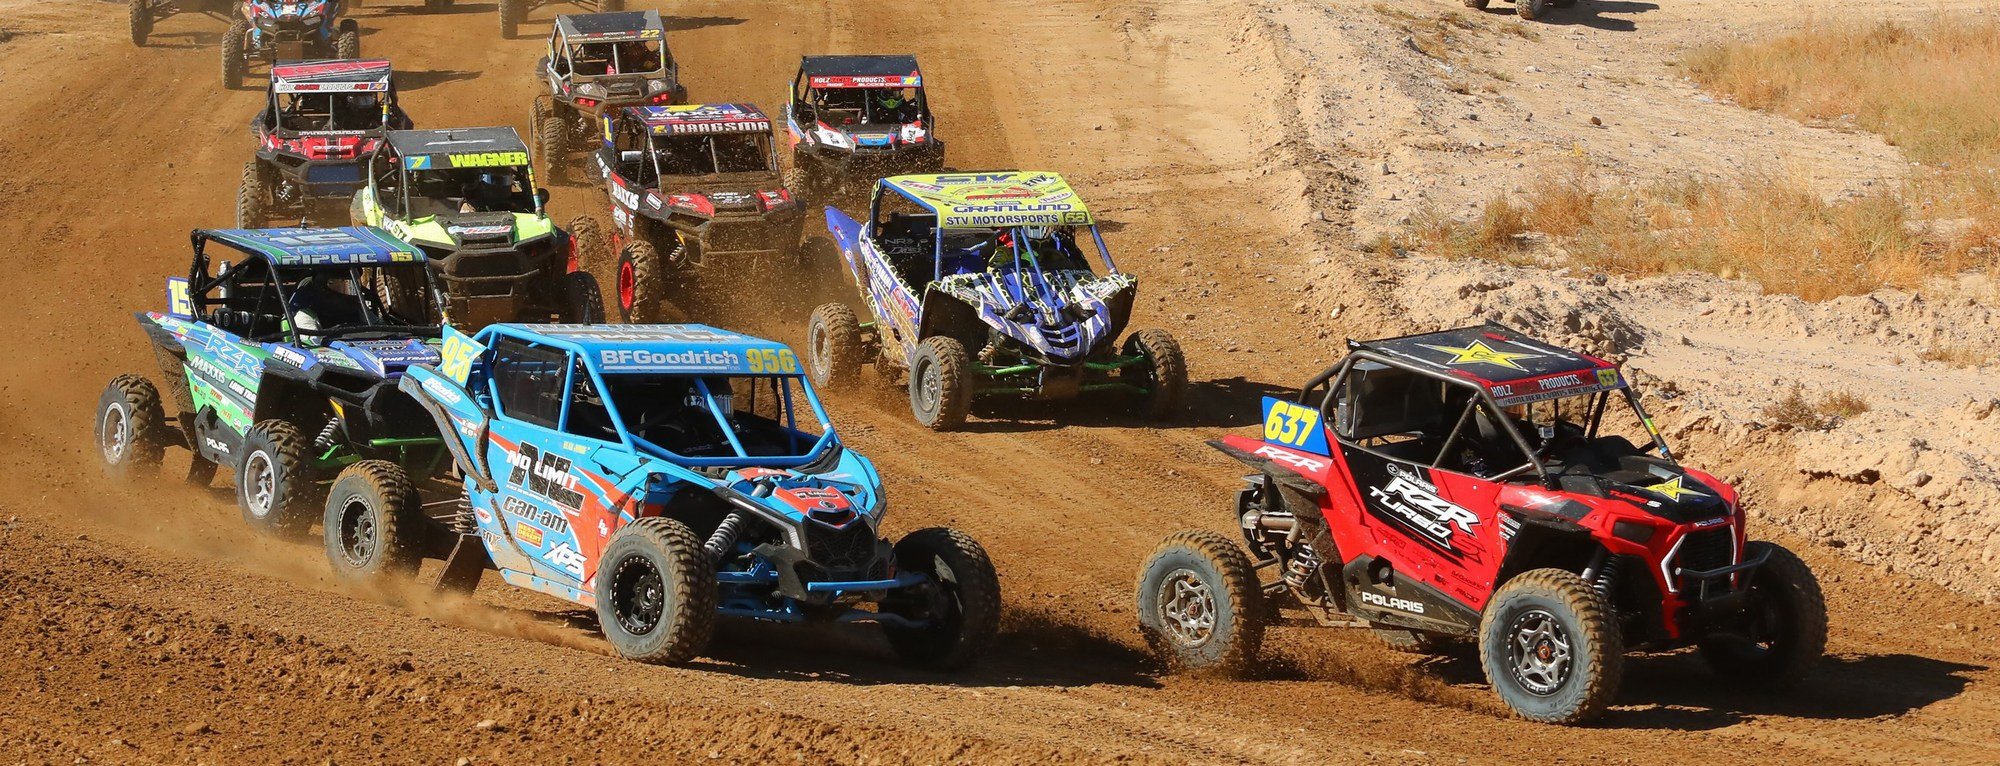 2018-09-rj-anderson-sc-start-utv-worcs-racing